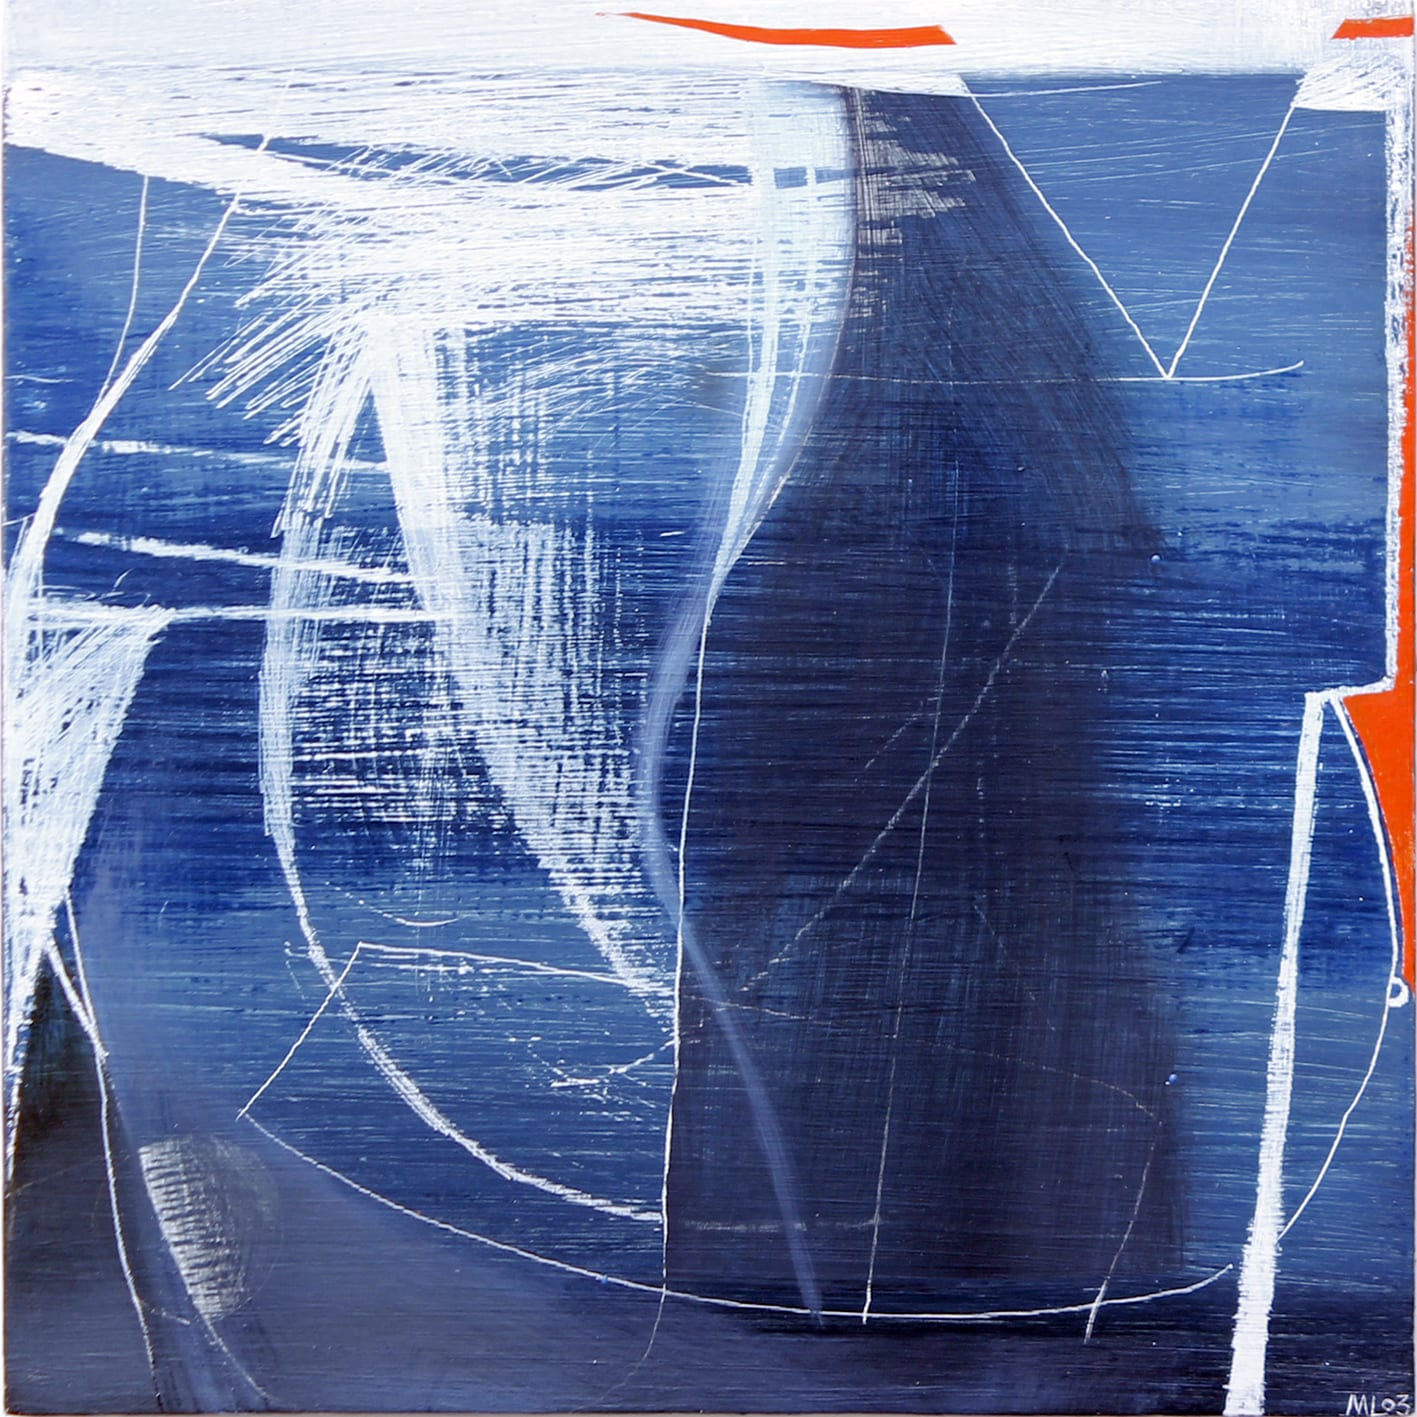 """<span class=""""link fancybox-details-link""""><a href=""""/artists/45-matthew-lanyon/works/5835-matthew-lanyon-europa-xiv-2003/"""">View Detail Page</a></span><div class=""""artist""""><strong>Matthew Lanyon</strong></div> 1951-2016 <div class=""""title""""><em>Europa XIV</em>, 2003</div> <div class=""""signed_and_dated"""">initialled 'ML' and dated '03' lower right, <br /> and further signed, titled and dated to reverse</div> <div class=""""medium"""">oil on board</div> <div class=""""dimensions"""">h 26.5 x w 26.5 cm<br /> h 10 3/8 x w 10 3/8 in</div><div class=""""copyright_line"""">© The Estate of Matthew Lanyon</div>"""